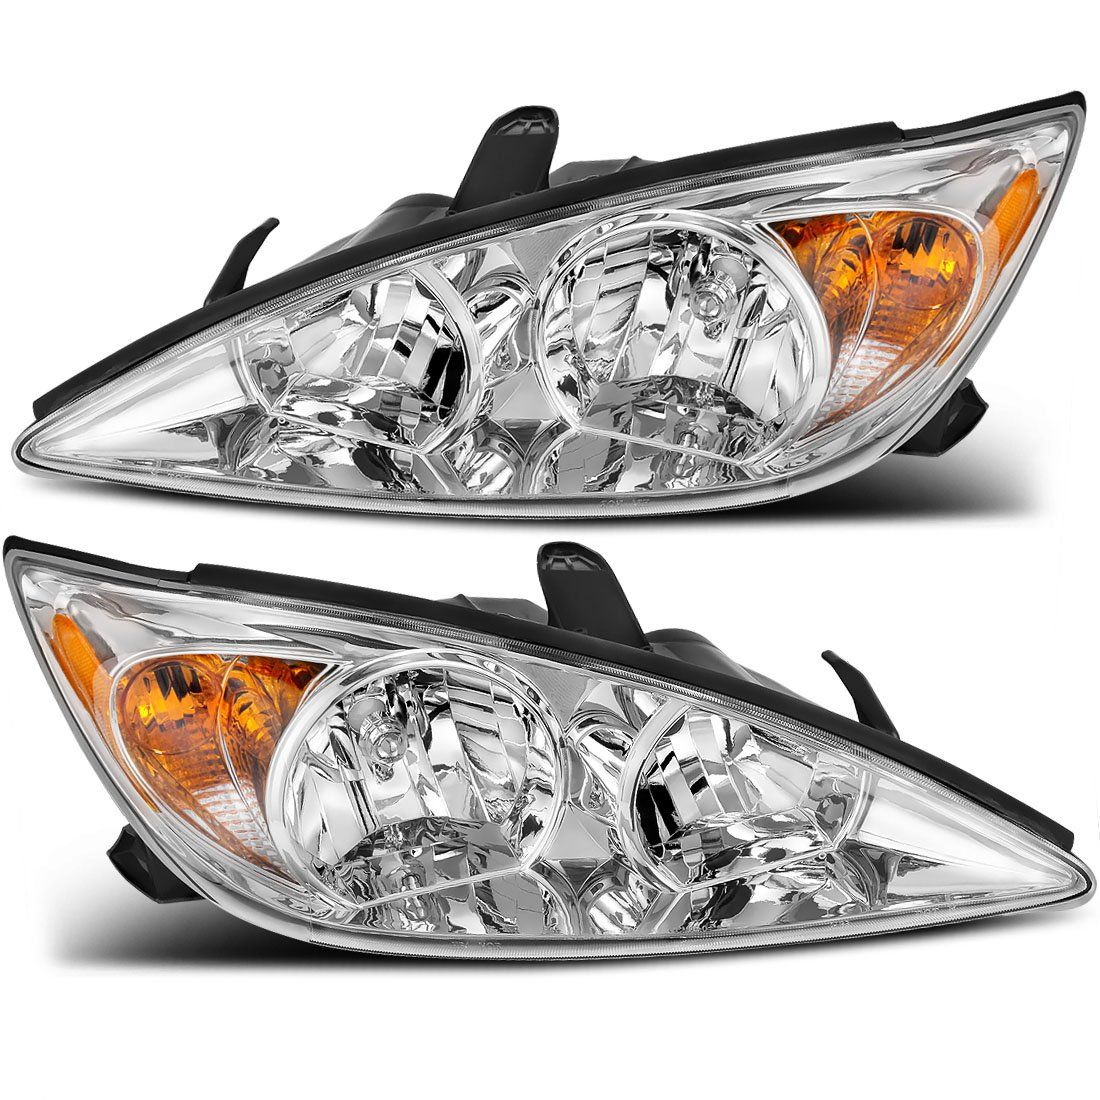 For Toyota Camry 2002 2004 Headlight Assembly Chrome Housing Amber Reflector Clear Lens Driver And Passenger Side Cli Headlight Assembly Camry Headlights